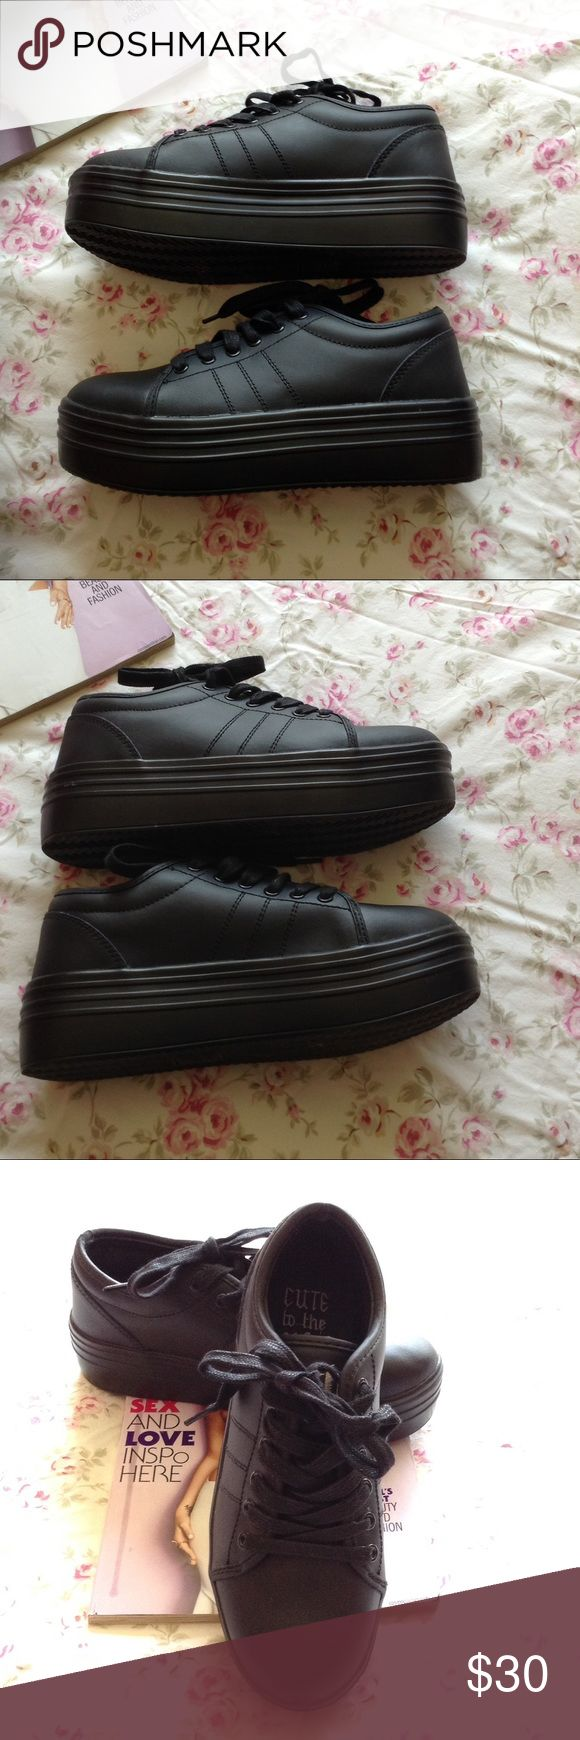 CUTE TO THE CORE BLACK PLATFORM  7 1/2 NWOT CUTE TO THE CORE GO BACK TO THE 90'S IN THESE BLACK VEGAN LEATHER, 2 INCH PLATFORM TENNIS SHOES, 7 1/2 NWOT CUTE TO THE CORE Shoes Platforms